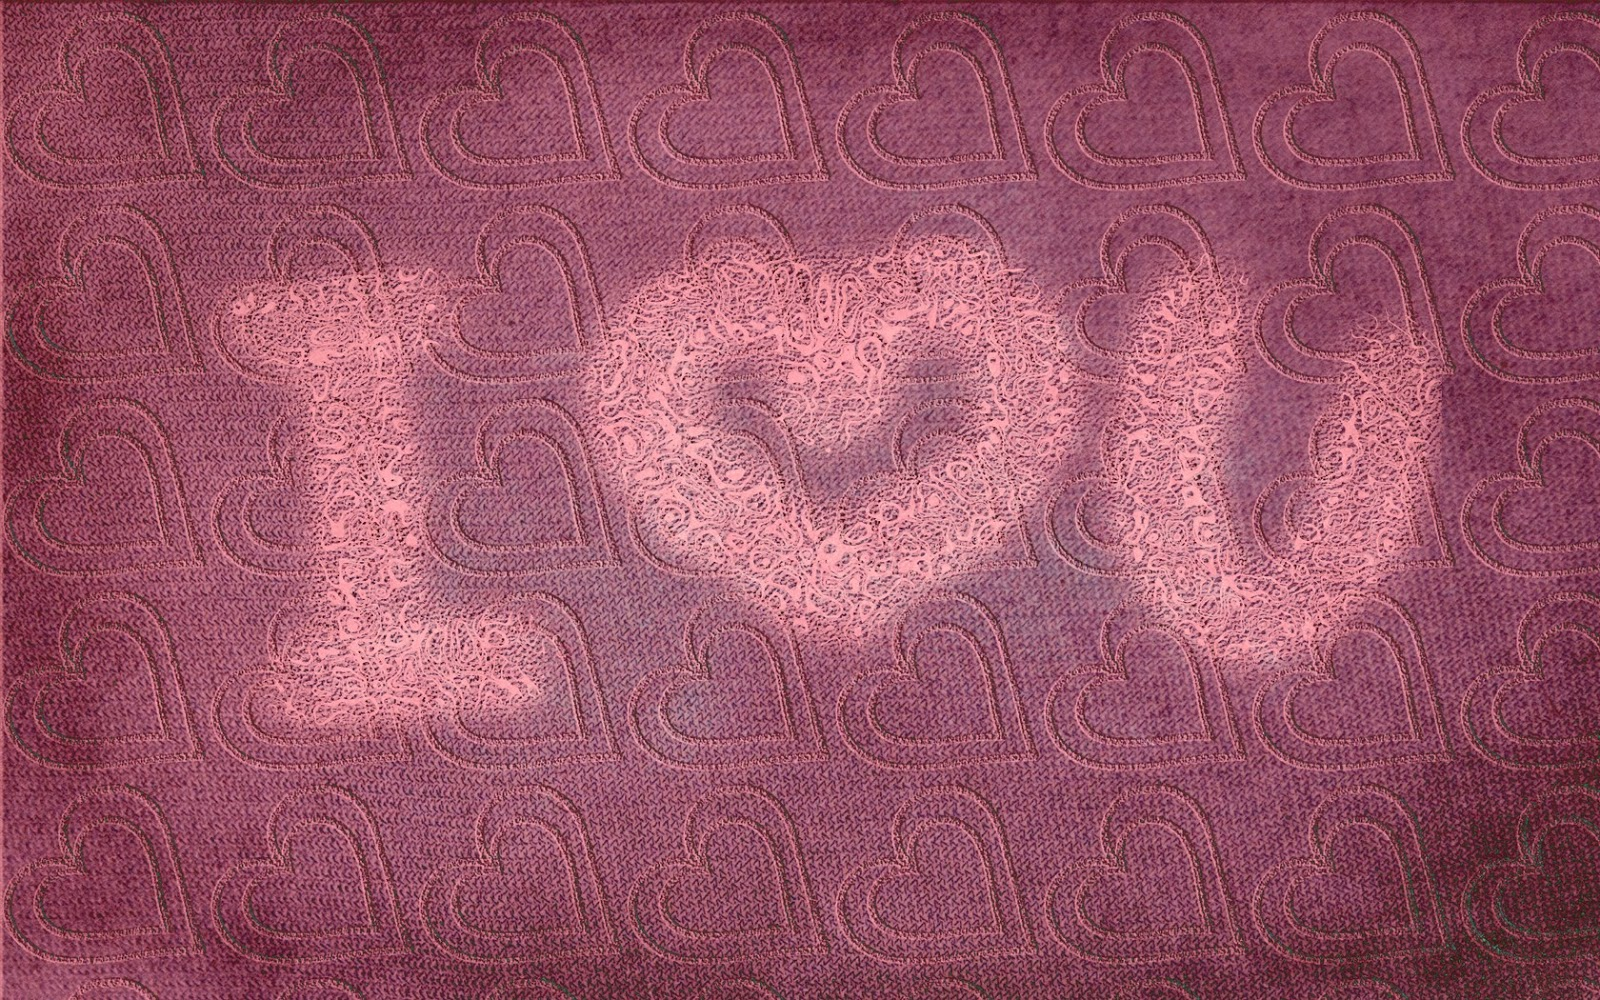 Love Hd Wallpapers Tumblr : Tumblr Love Backgrounds 16949 1600x1000 px ~ HDWallSource.com